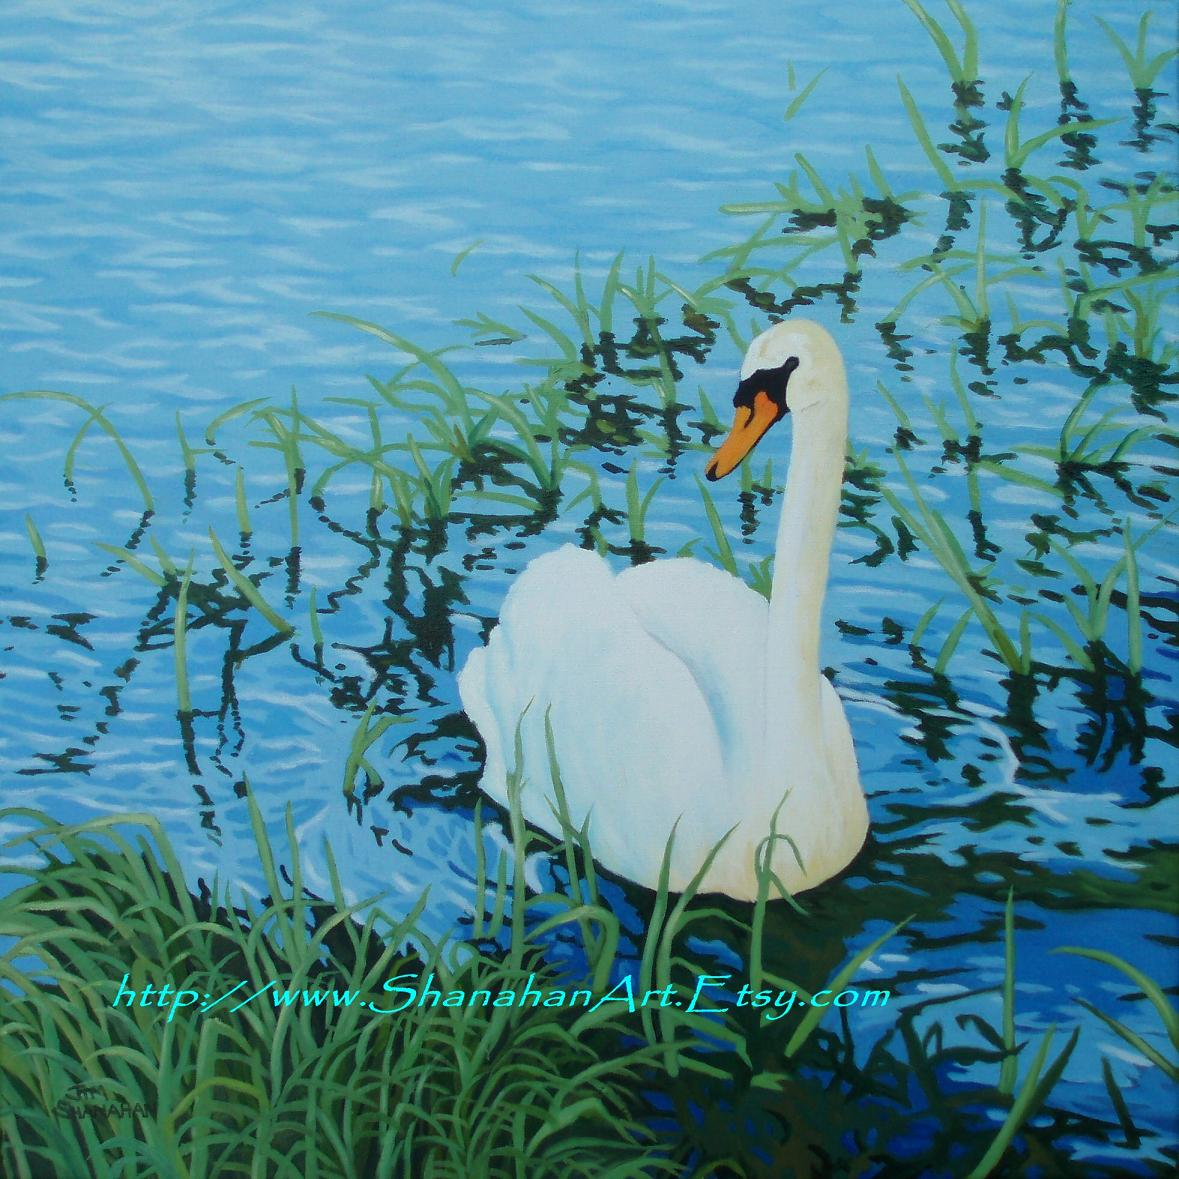 Swan in Reeds - For Sale Euro 300